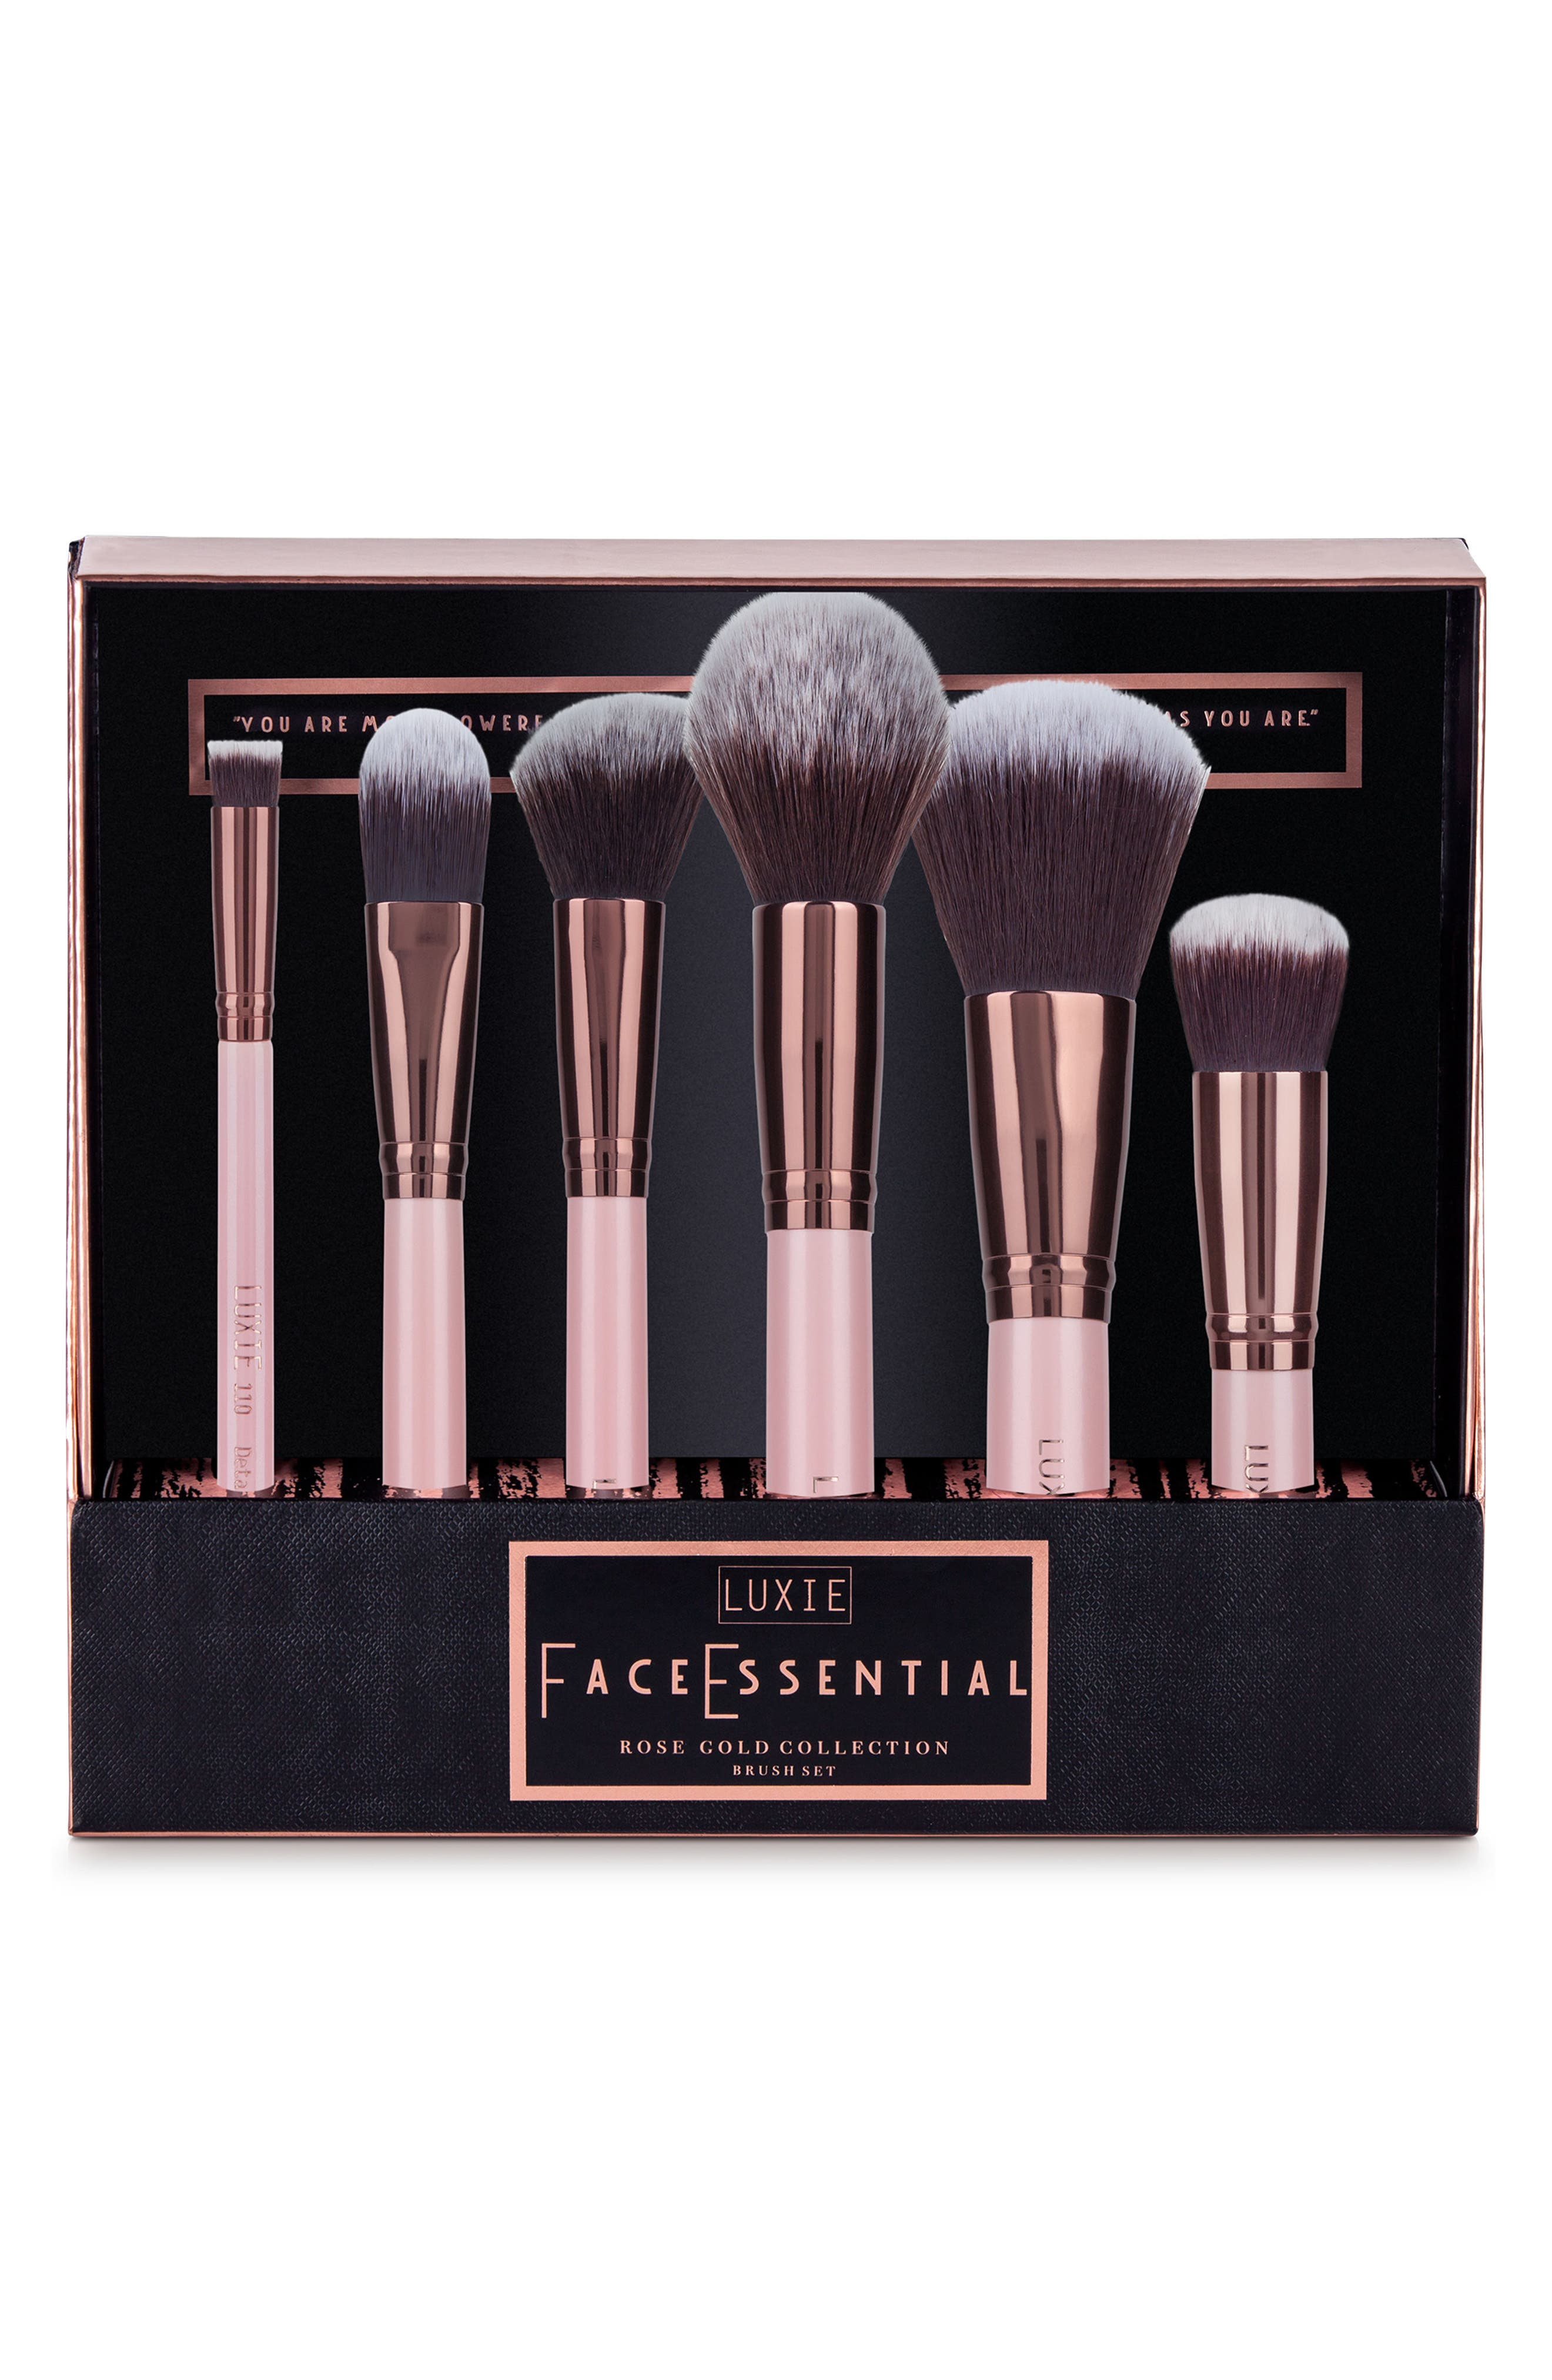 Rose Gold Face Essential Brush Set,                             Main thumbnail 1, color,                             NO COLOR